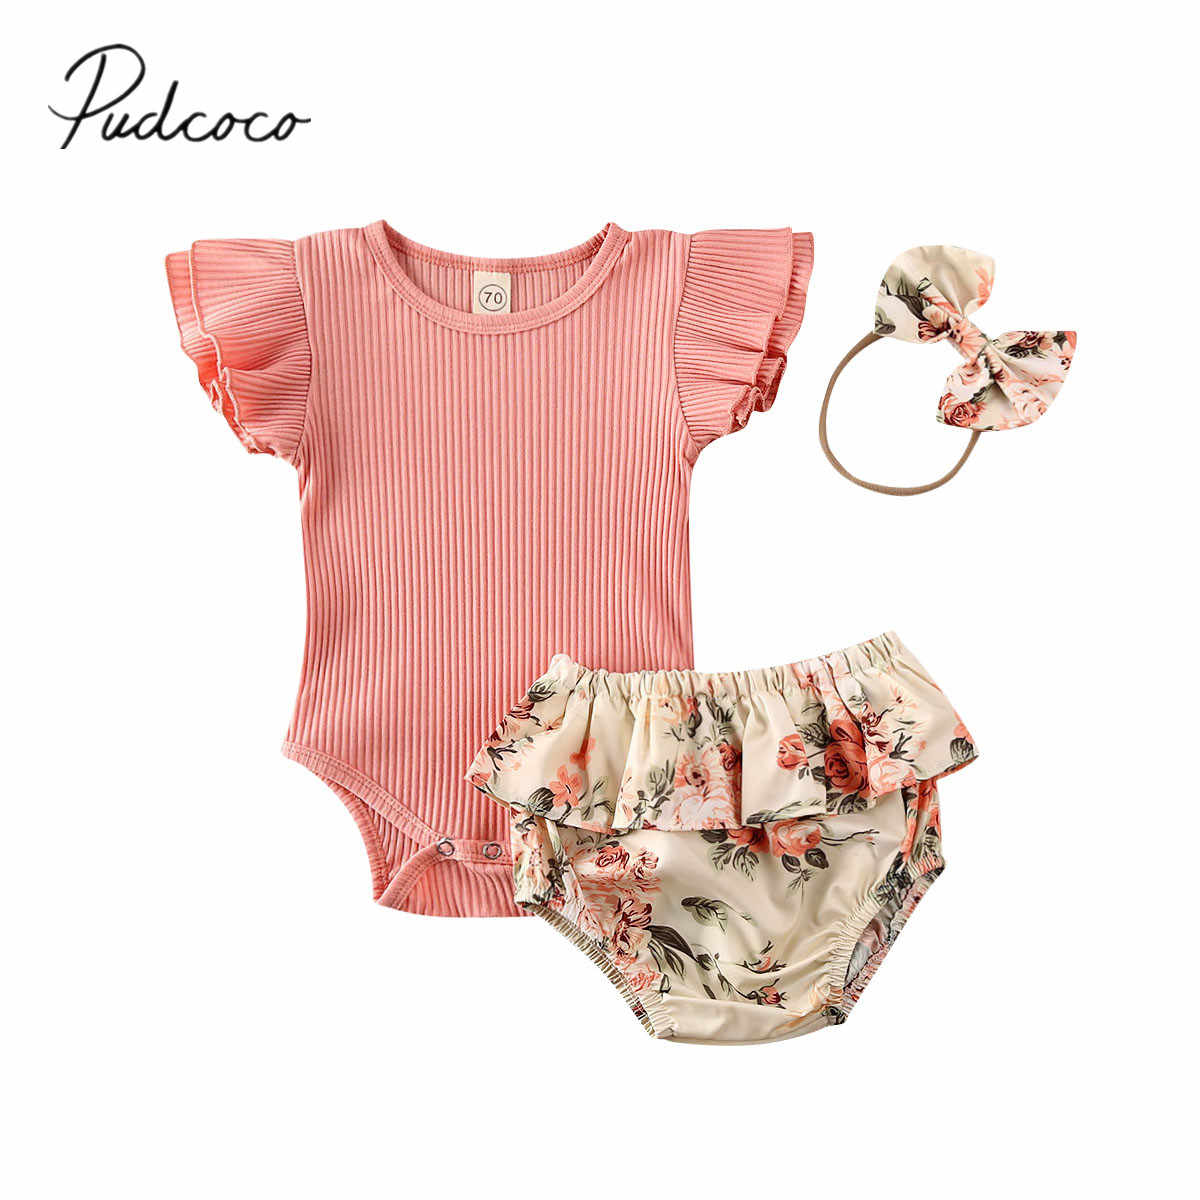 2020 Baby Summer Clothing Infant Newborn Baby Girl Ruffled Ribbed Bodysuit Floral Shorts Headband 3Pcs Set